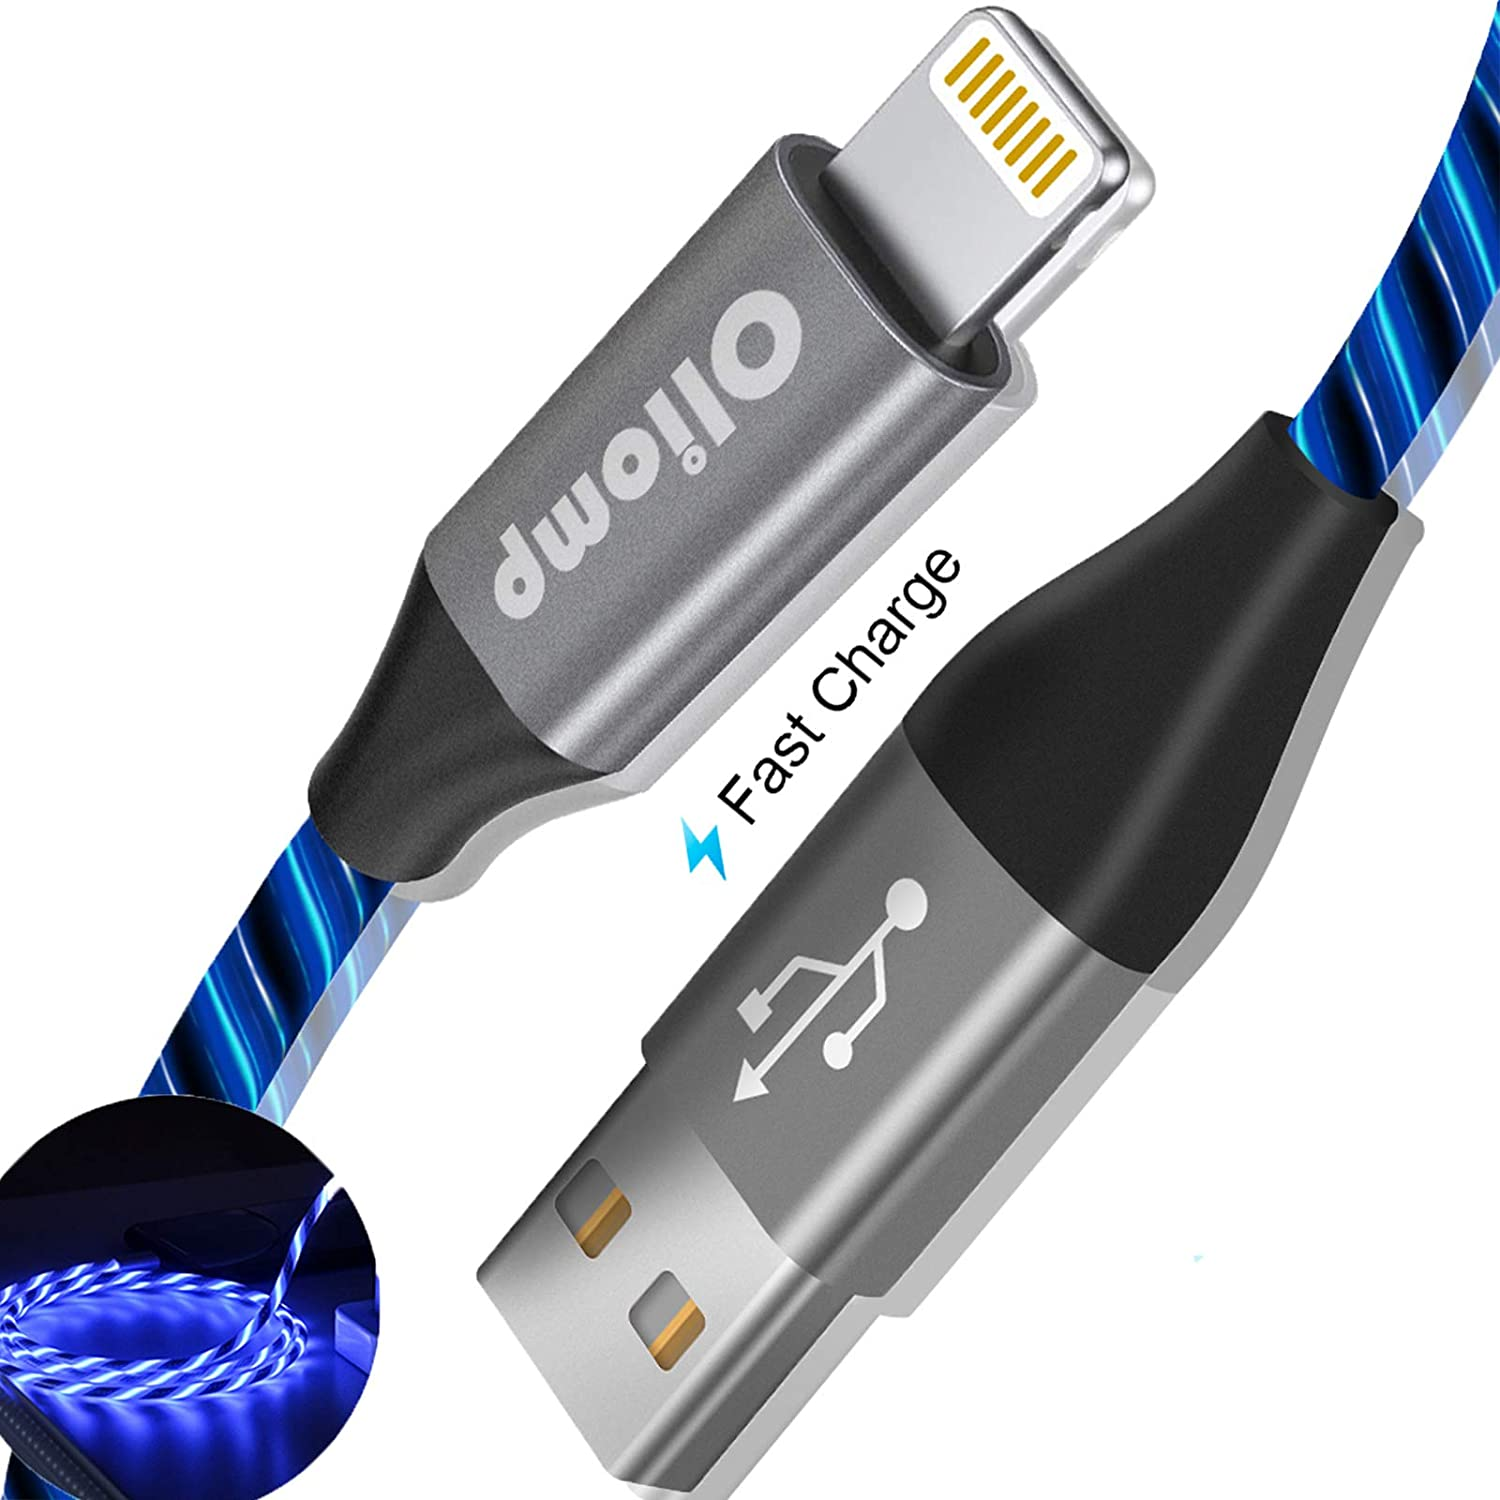 iPhone Charger Cable, Oliomp (Apple MFi Certified) 6ft LED Light Up Visible Flowing Lightning Cable iPhone Charging Cord for Apple iPhone 11 Pro Max XS XR X 8 7 6S 6 Plus SE 5S 5C 5 iPad (Blue)